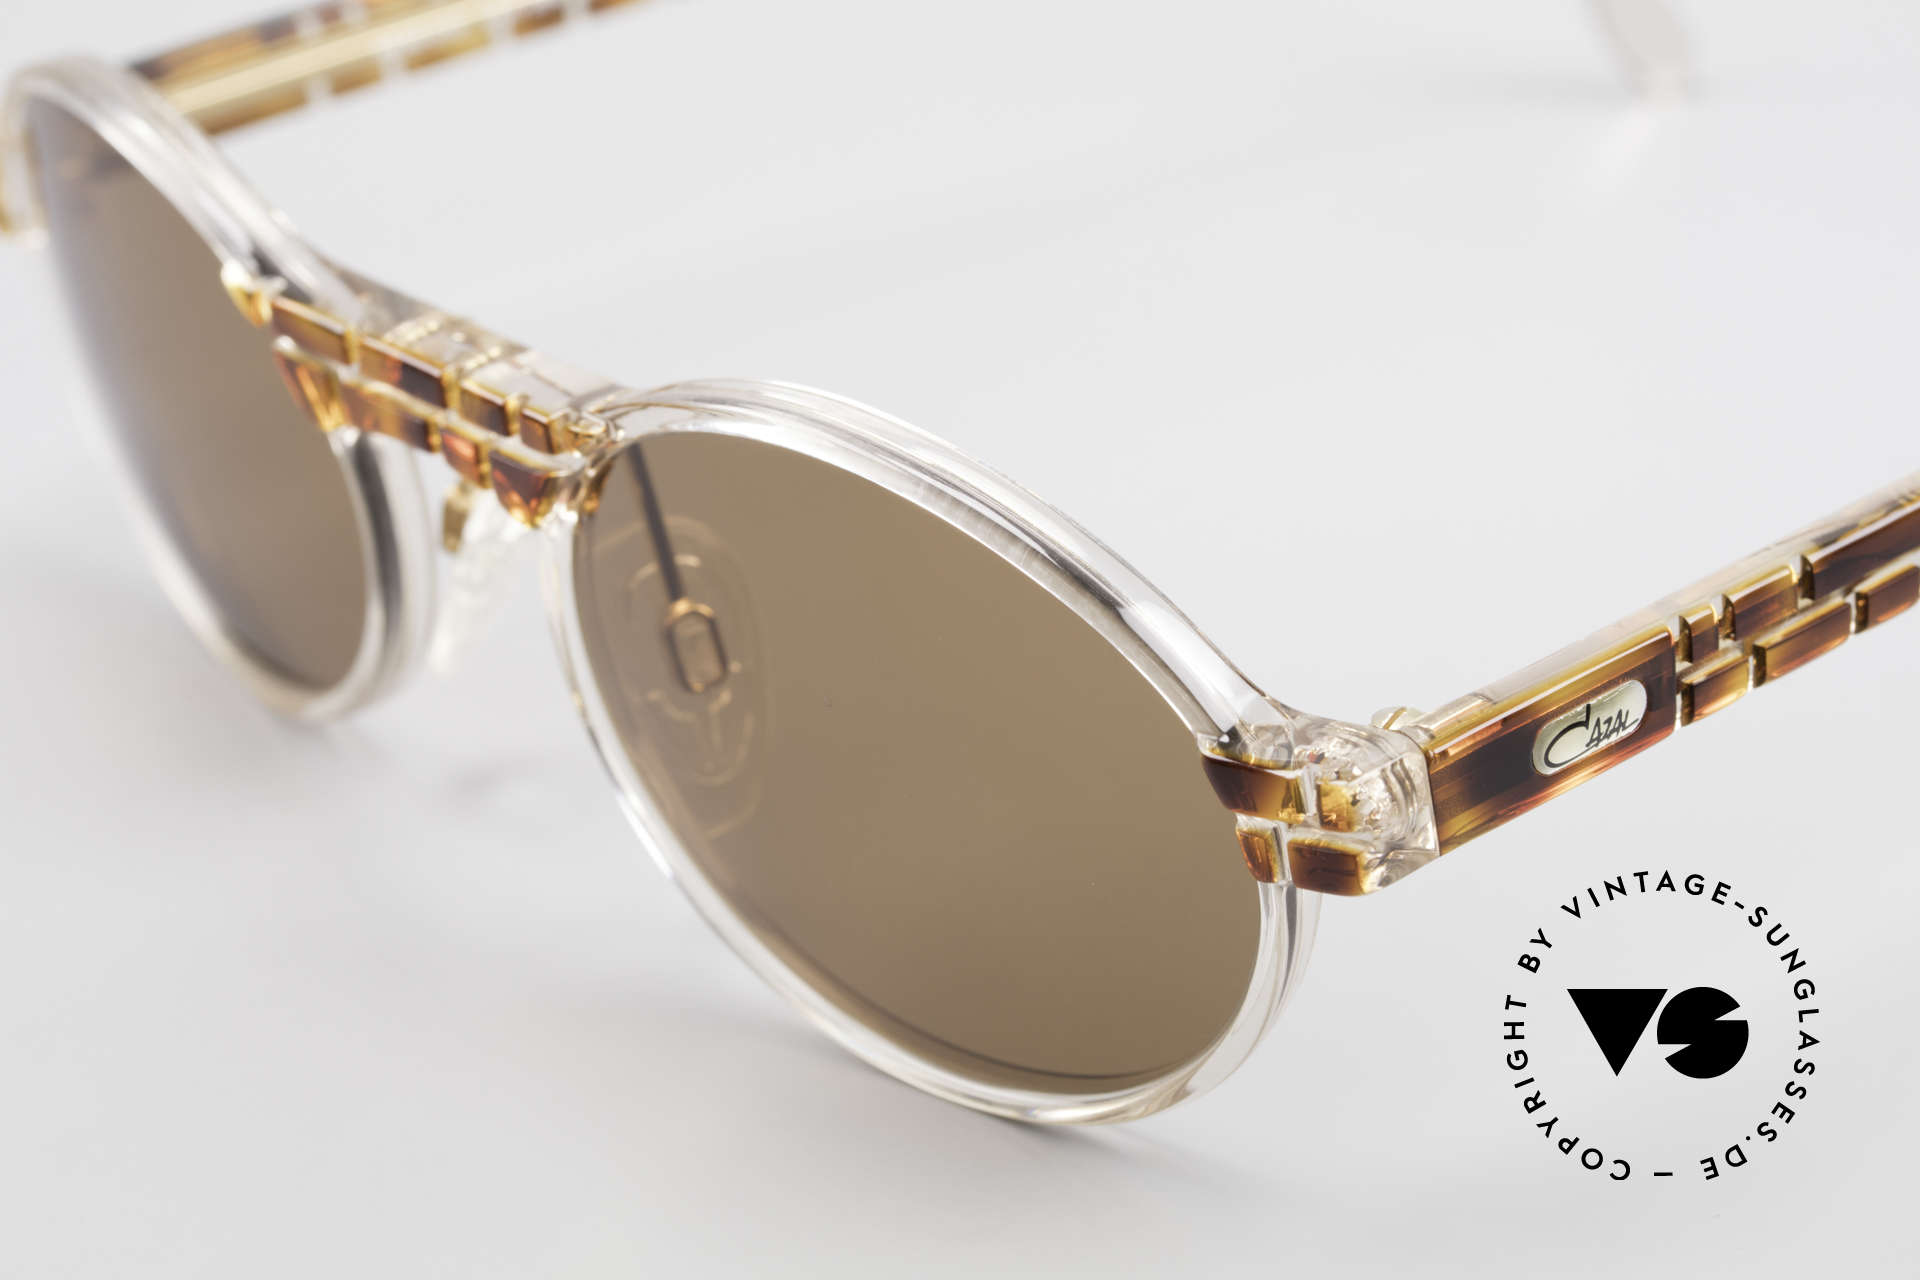 Cazal 510 Limited Oval Vintage Cazal, fantastic combination of shape, colors and materials, Made for Men and Women